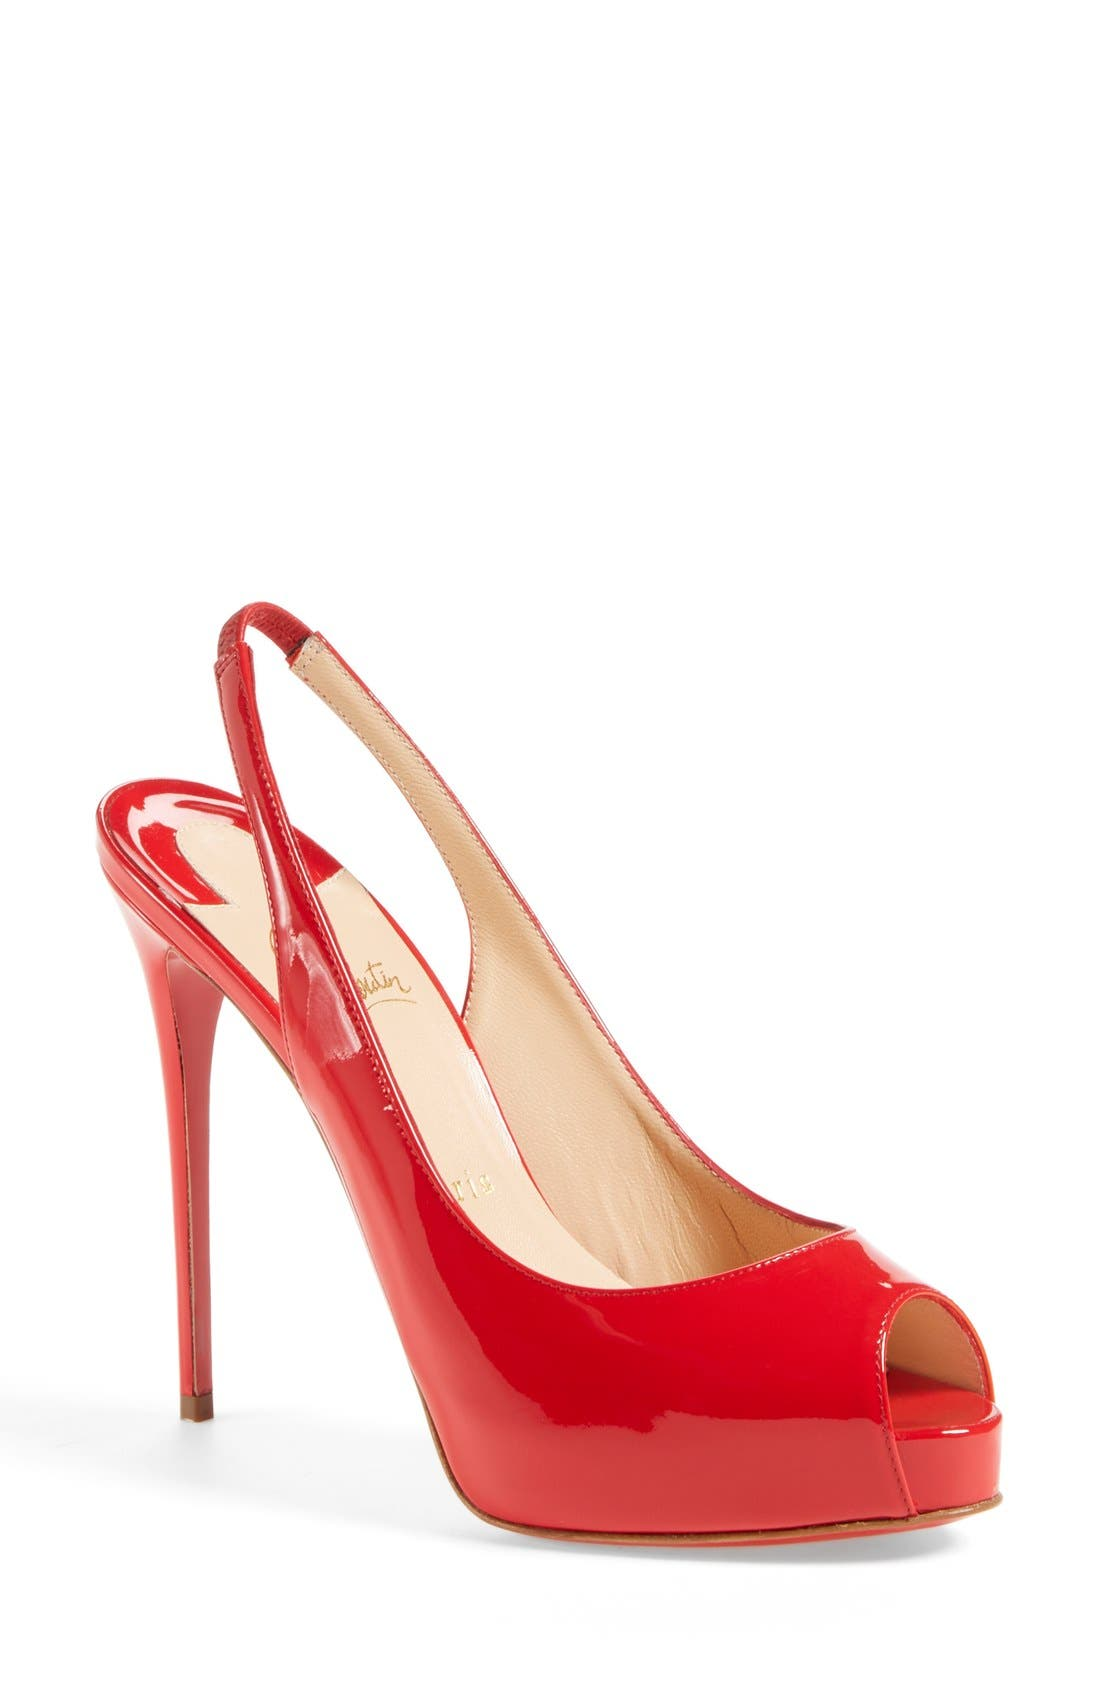 Main Image - Christian Louboutin 'Private Number' Peep Toe Slingback Pump